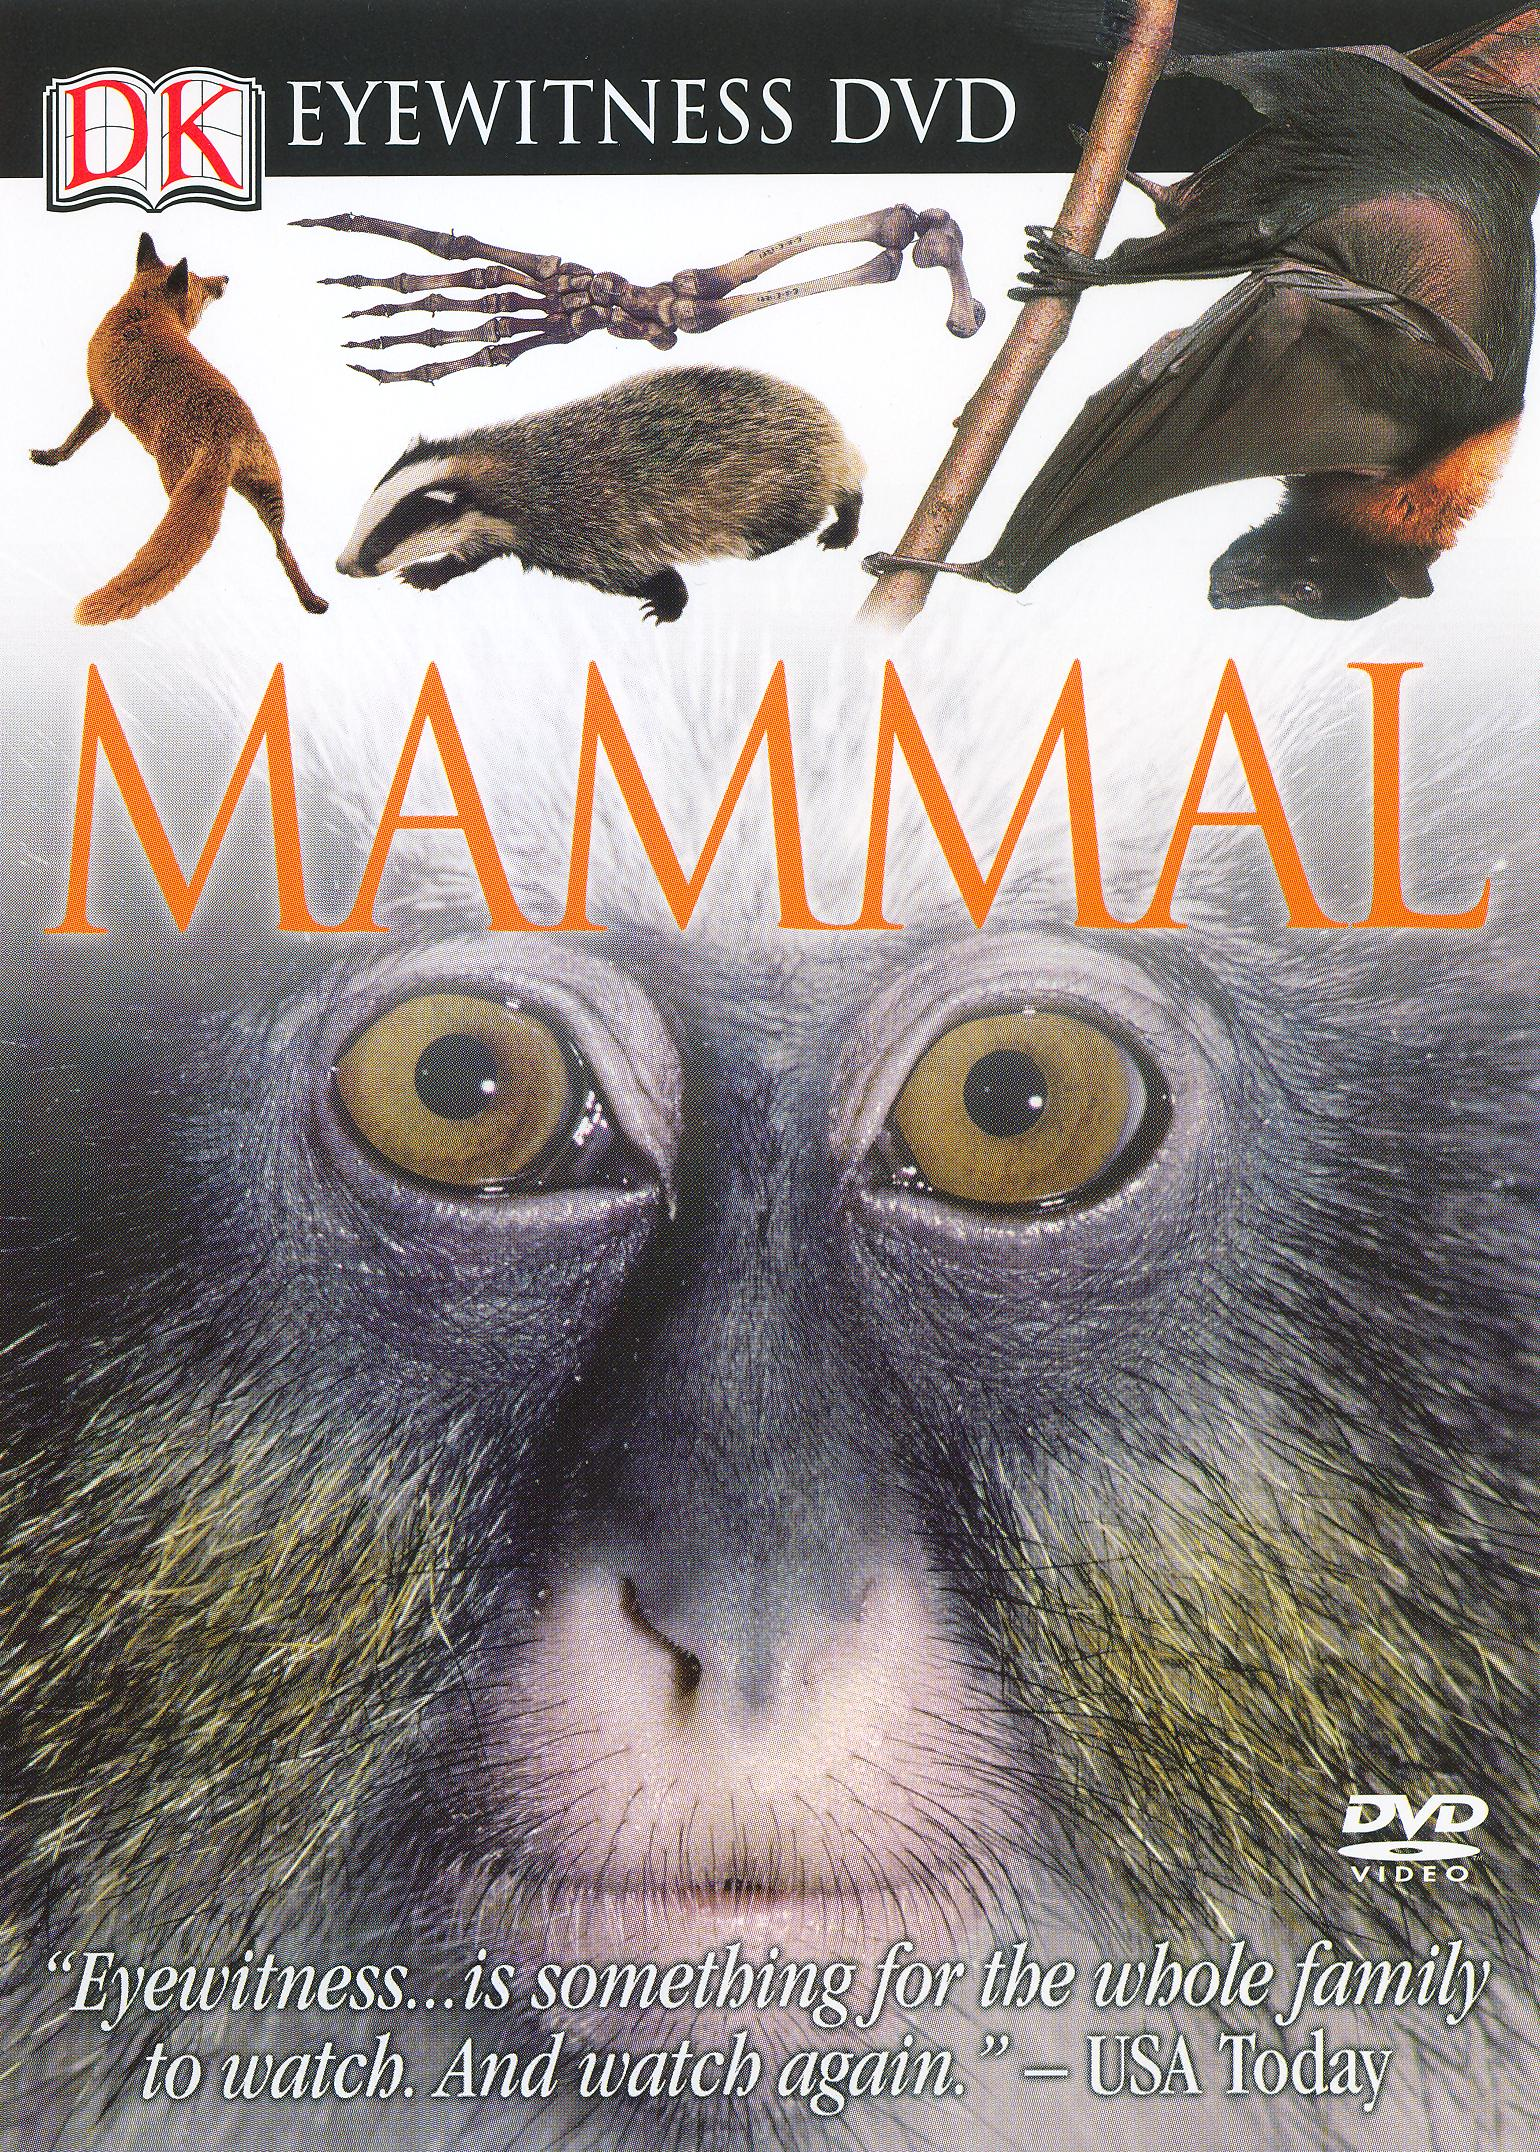 Eyewitness: Mammal (1999)